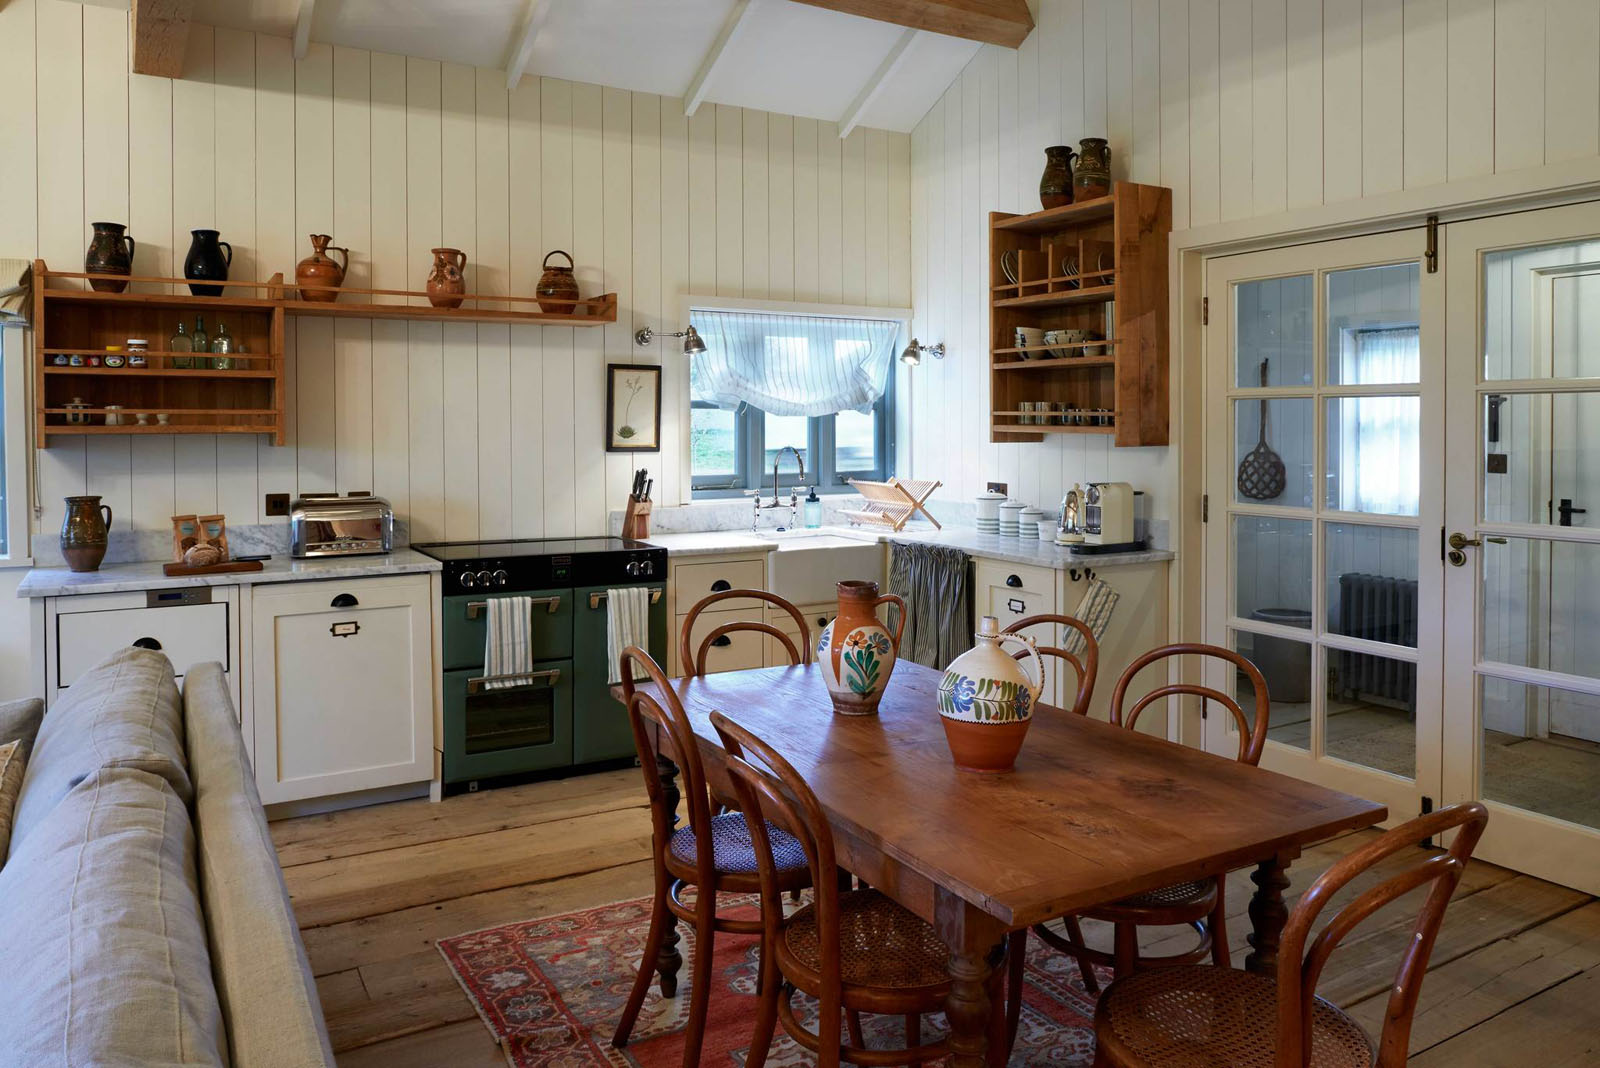 English Farmhouse Interiors Soho Farmhouse Oxfordshire An Exclusive Retreat In The